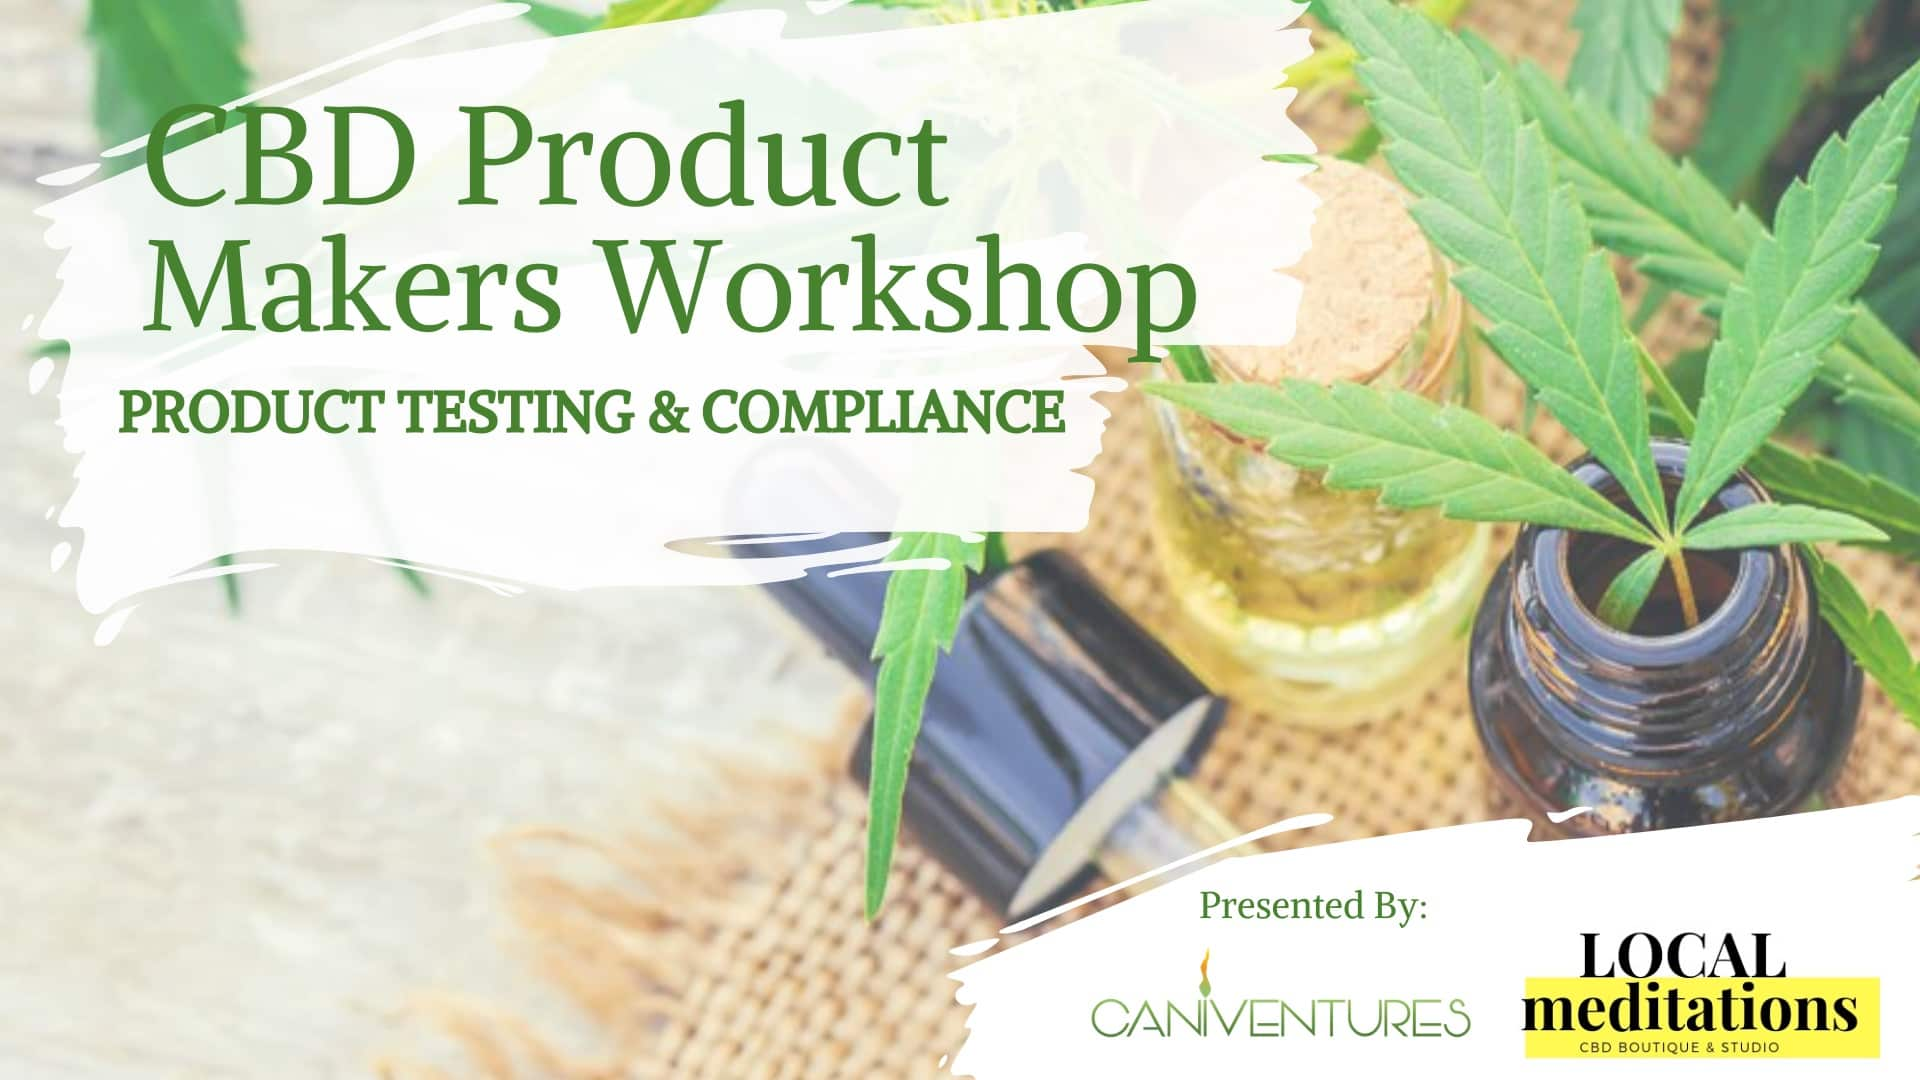 Product Testing & Compliance Workshop